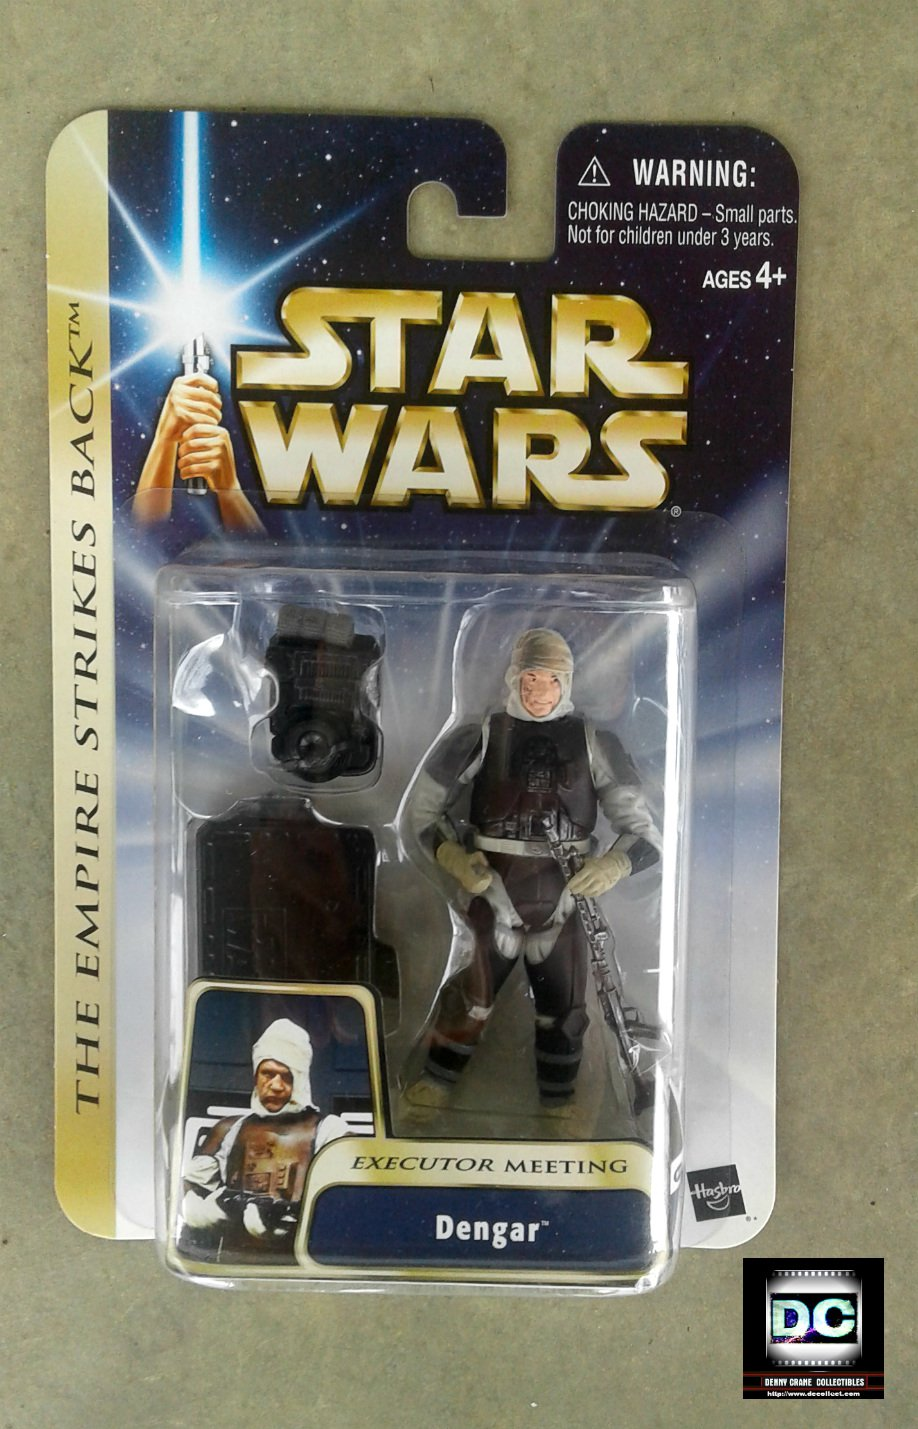 Dengar Bounty Hunter Star Wars Esb Saga 2004 (Executor Meeting)